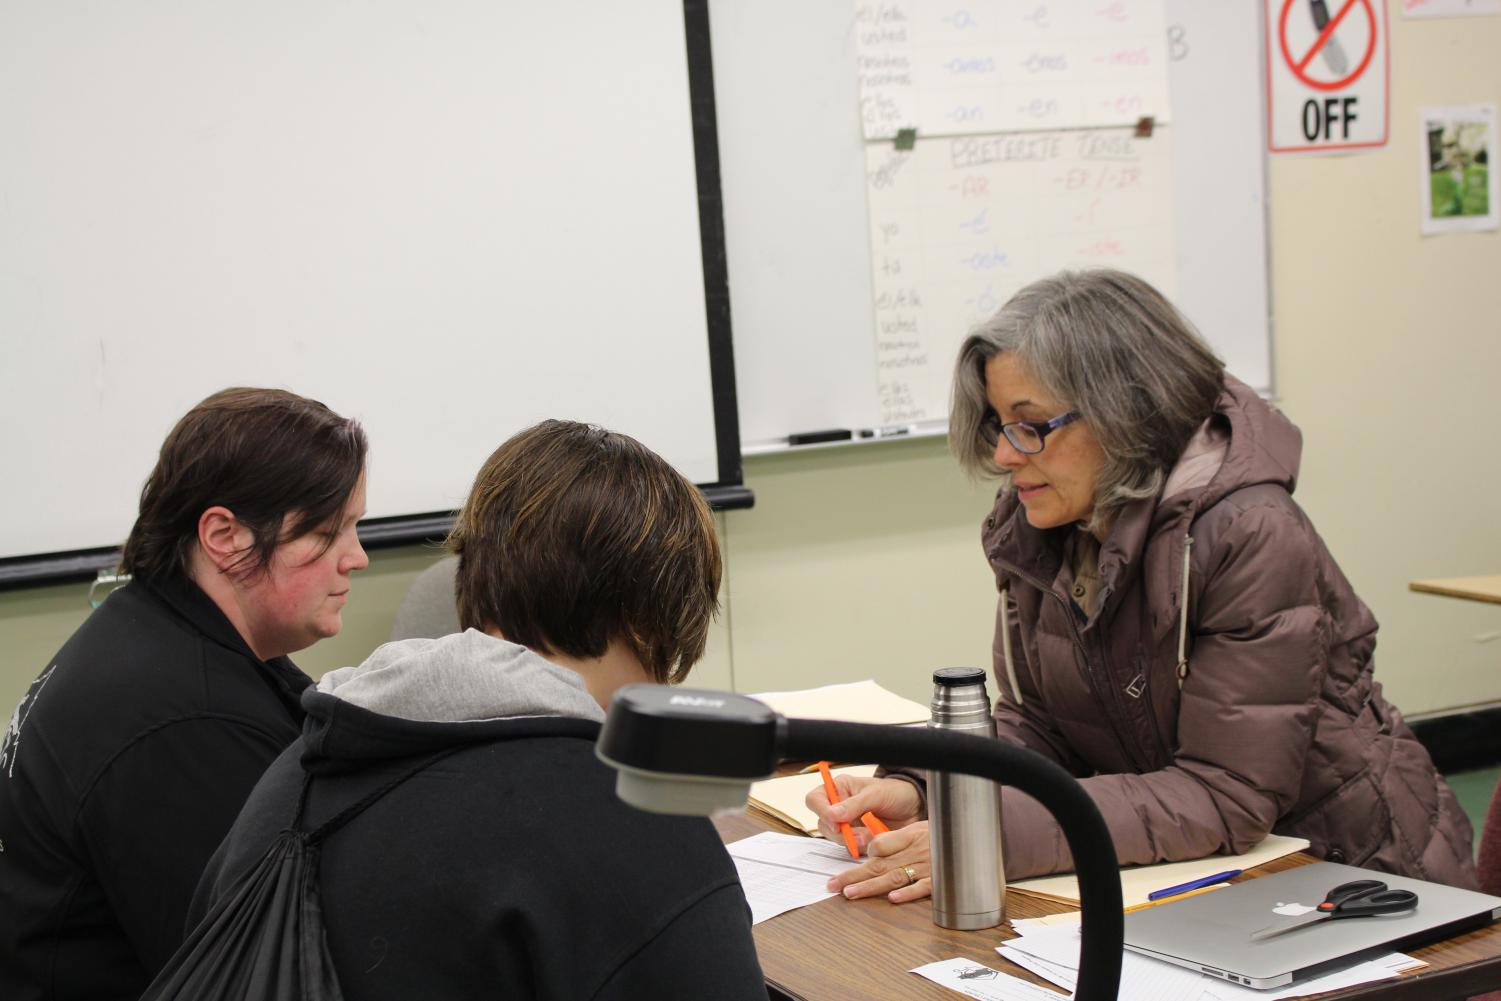 Spanish teacher Mrs. Cavanagh during a conference with one of her Spanish 3-4 students